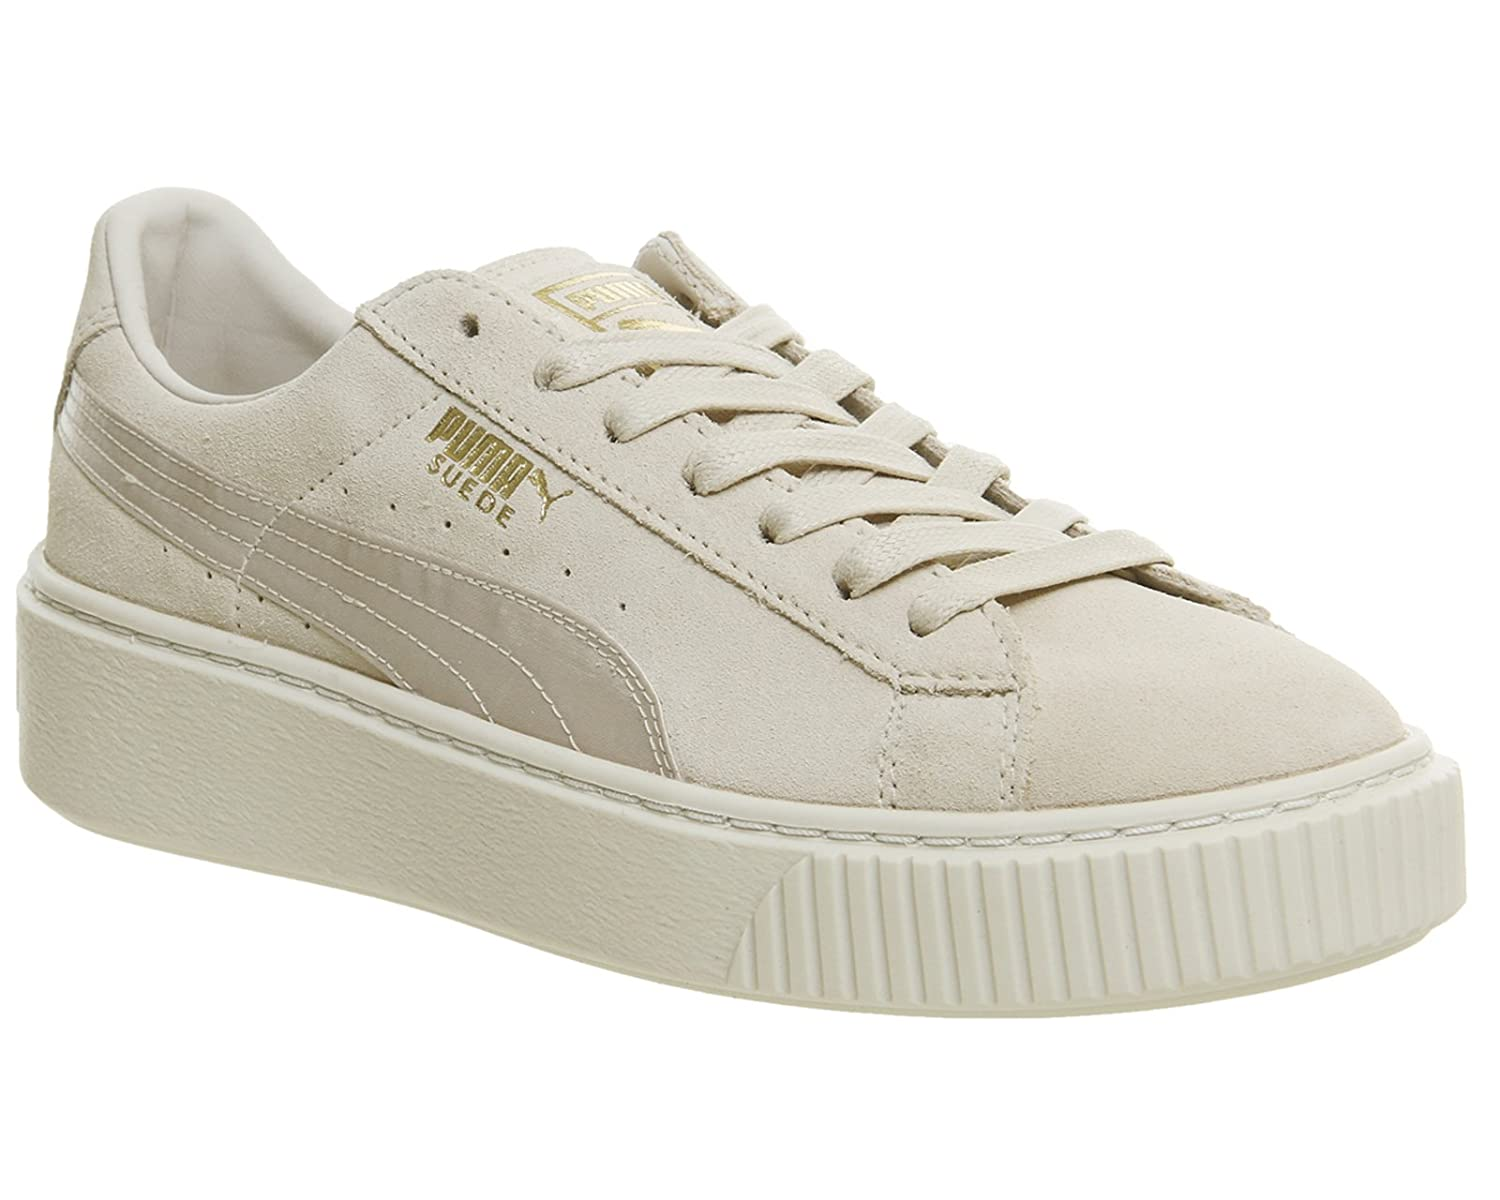 new product c3d14 82246 Puma Womens Suede Platform Mono Satin Trainers in Beige ...